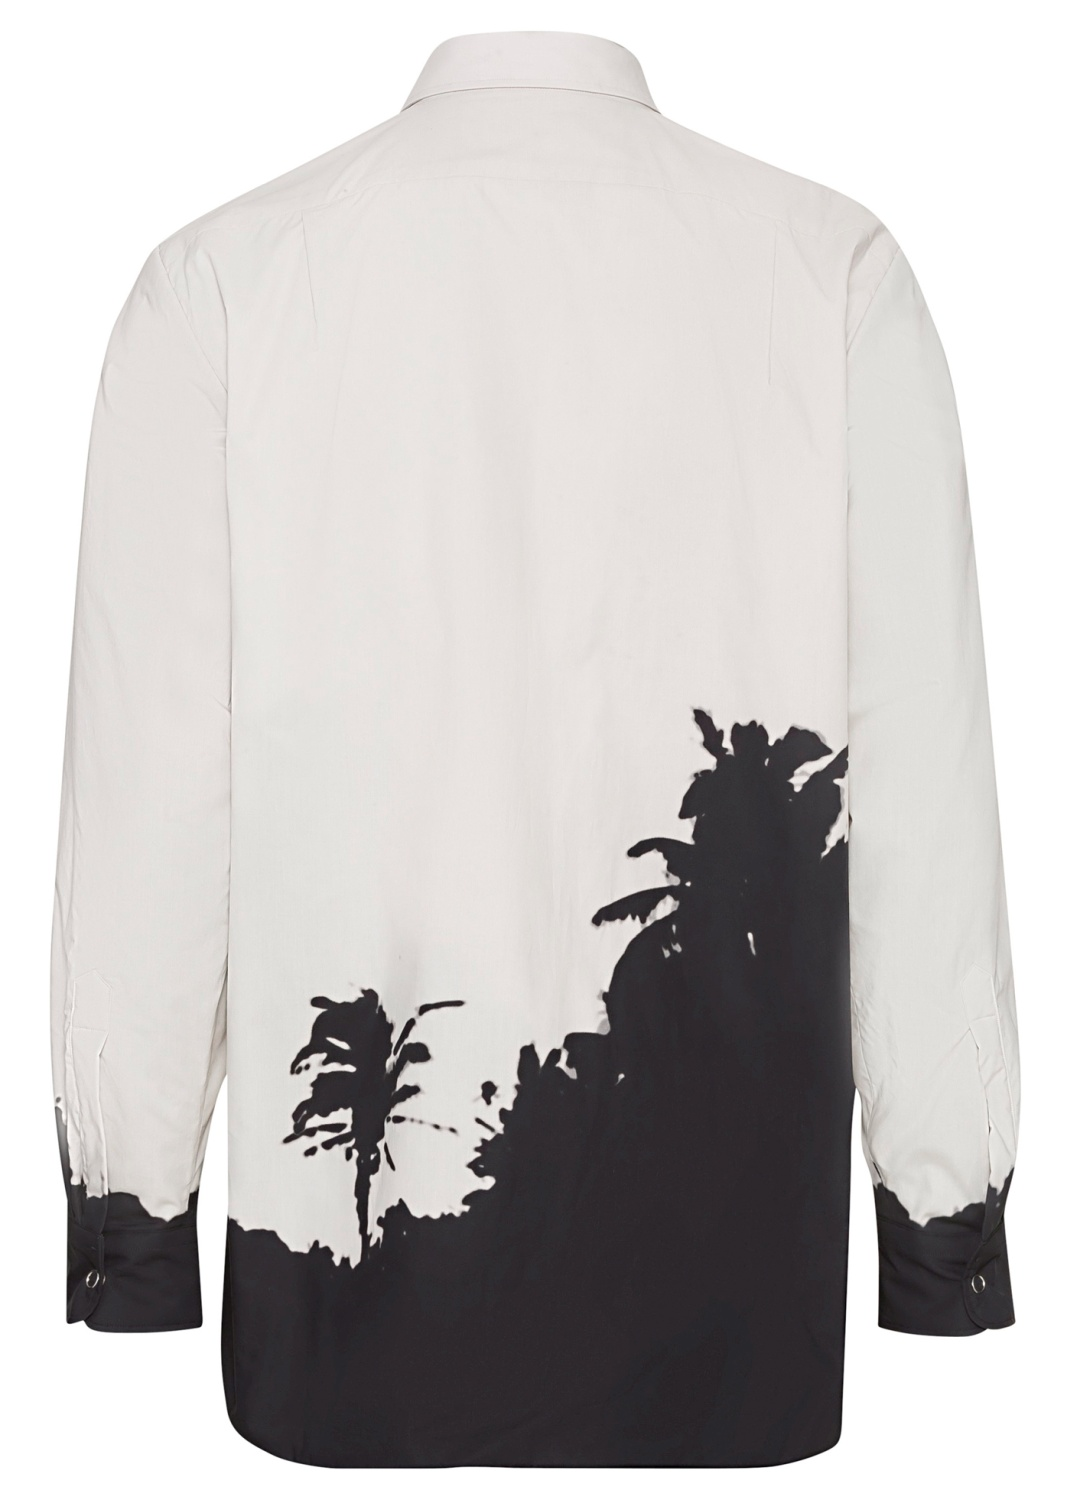 CARNELL 2066 M.W. SHIRT image number 1